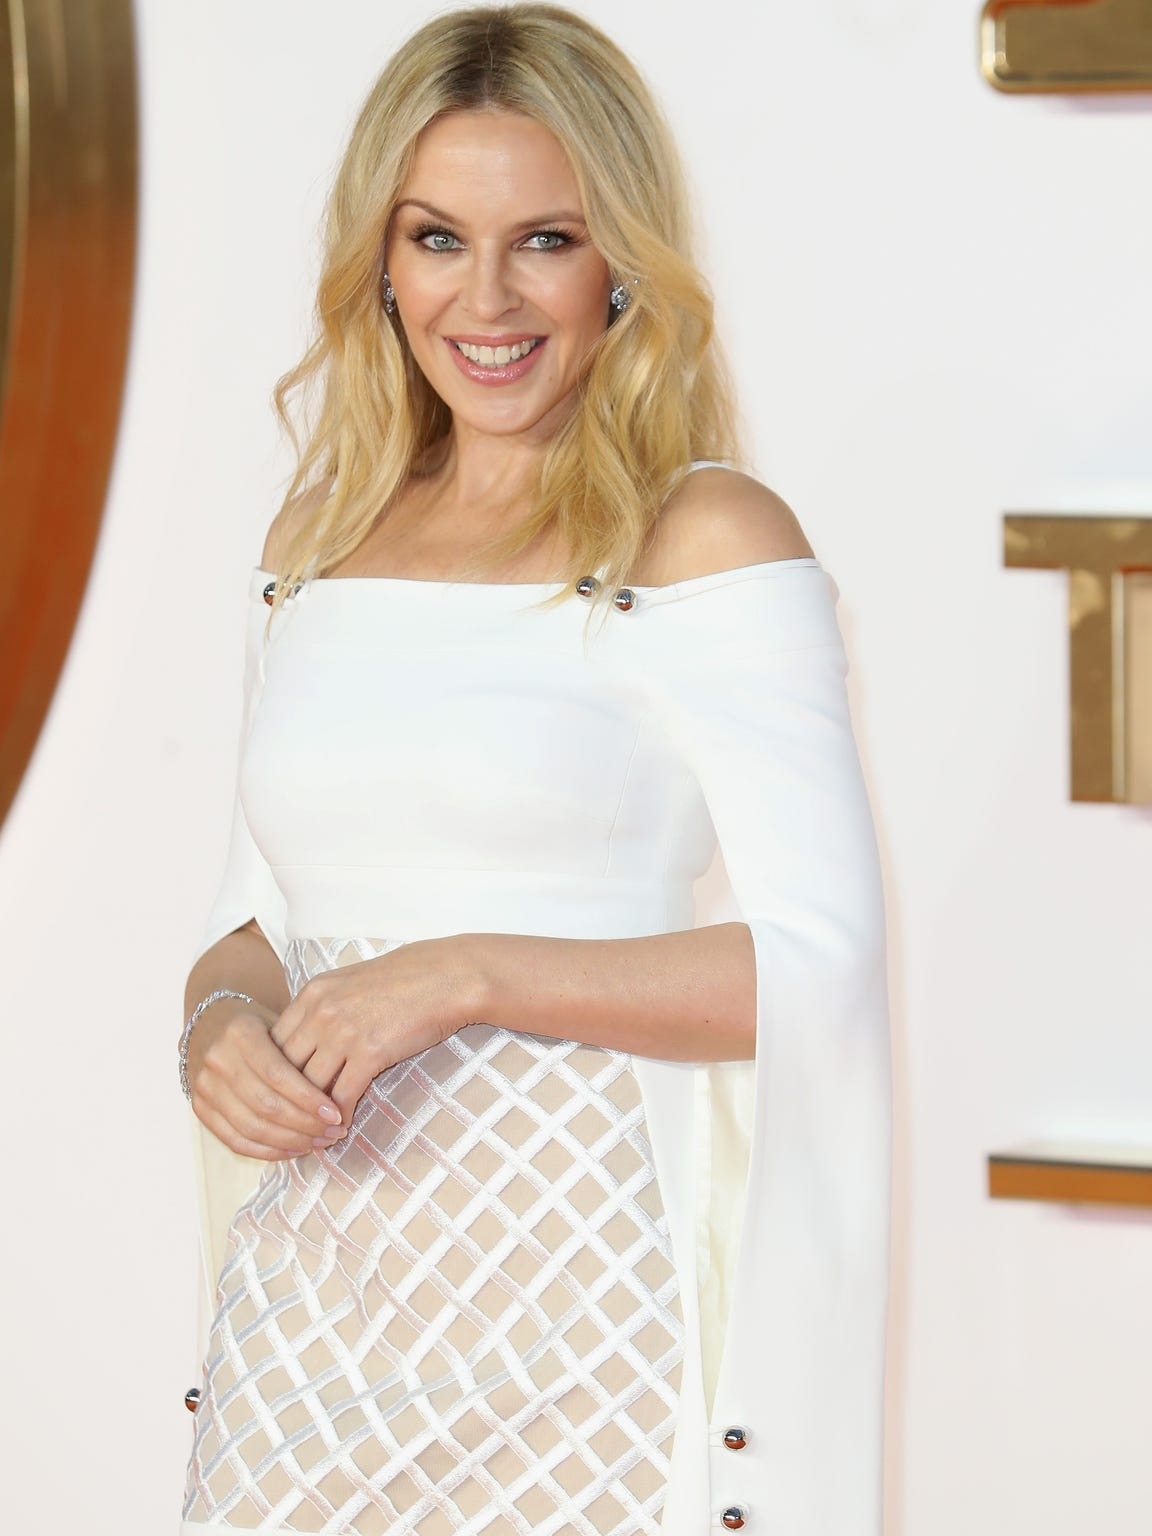 Singer Kylie Minogue is expected to headline this year's